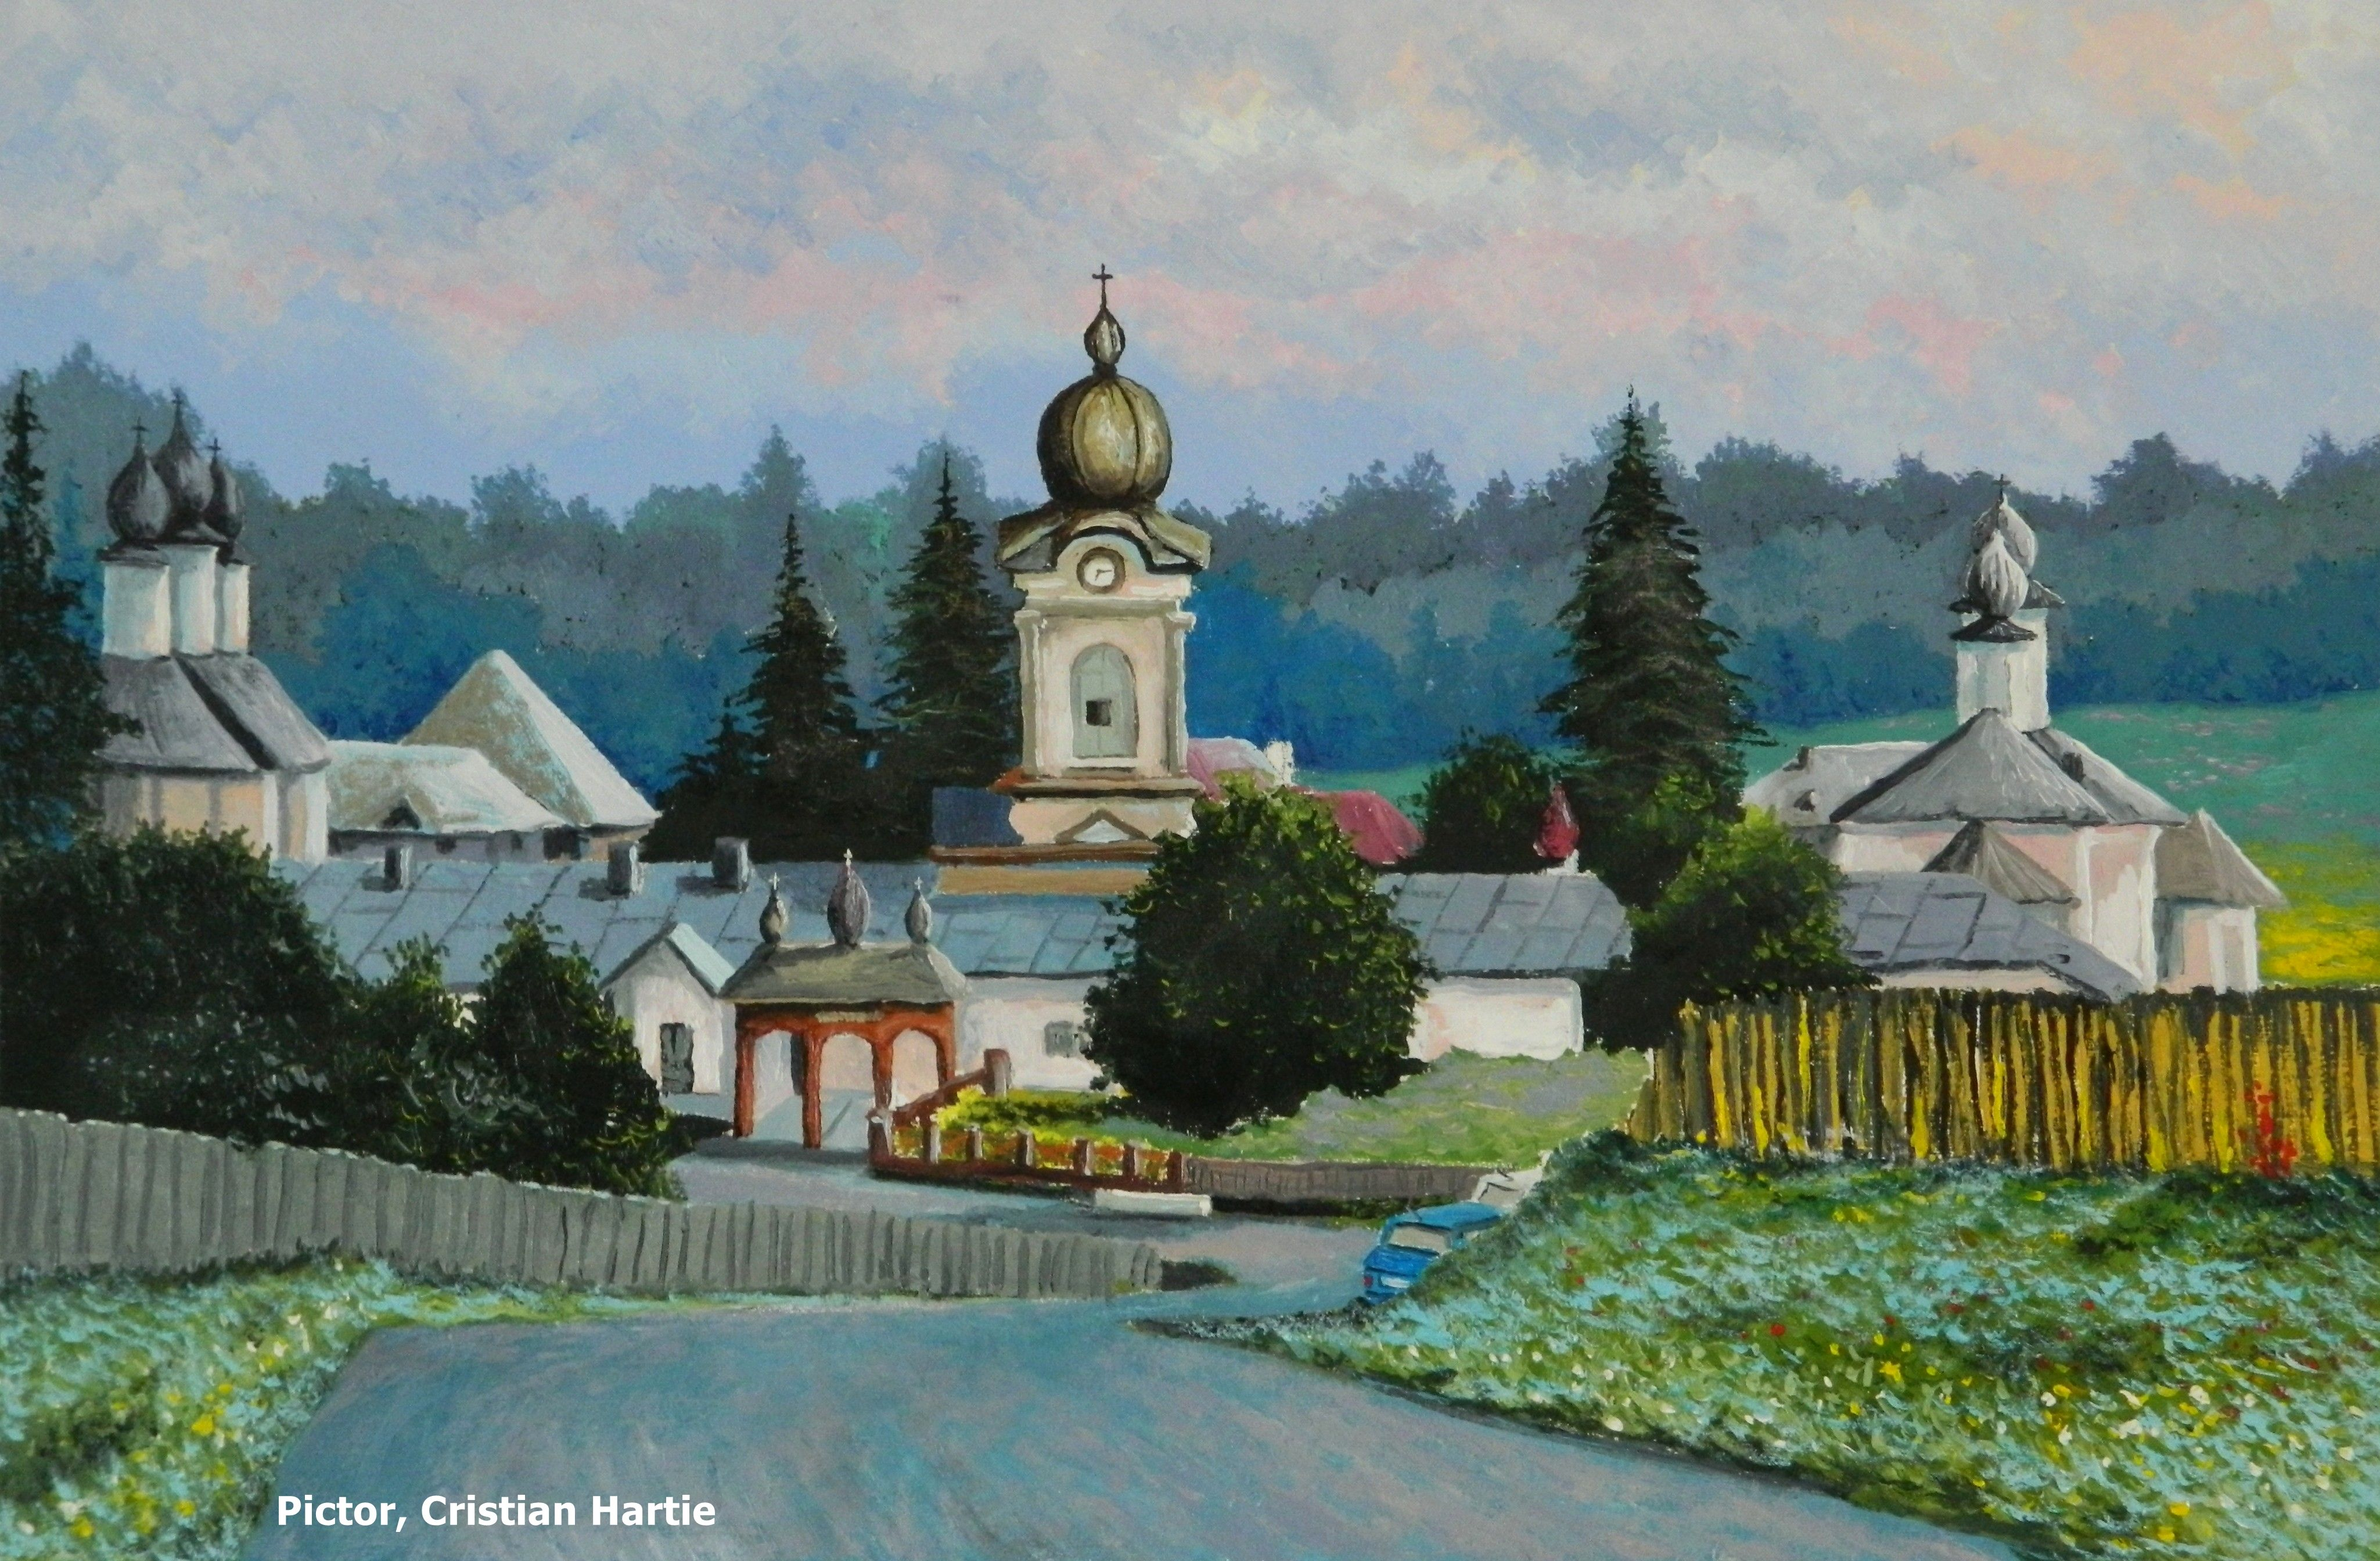 Manastirea Vorona, Botosani 60 x 40 cm Pictor, Cristian Hartie | Botosani, Painting, Paintings for sale